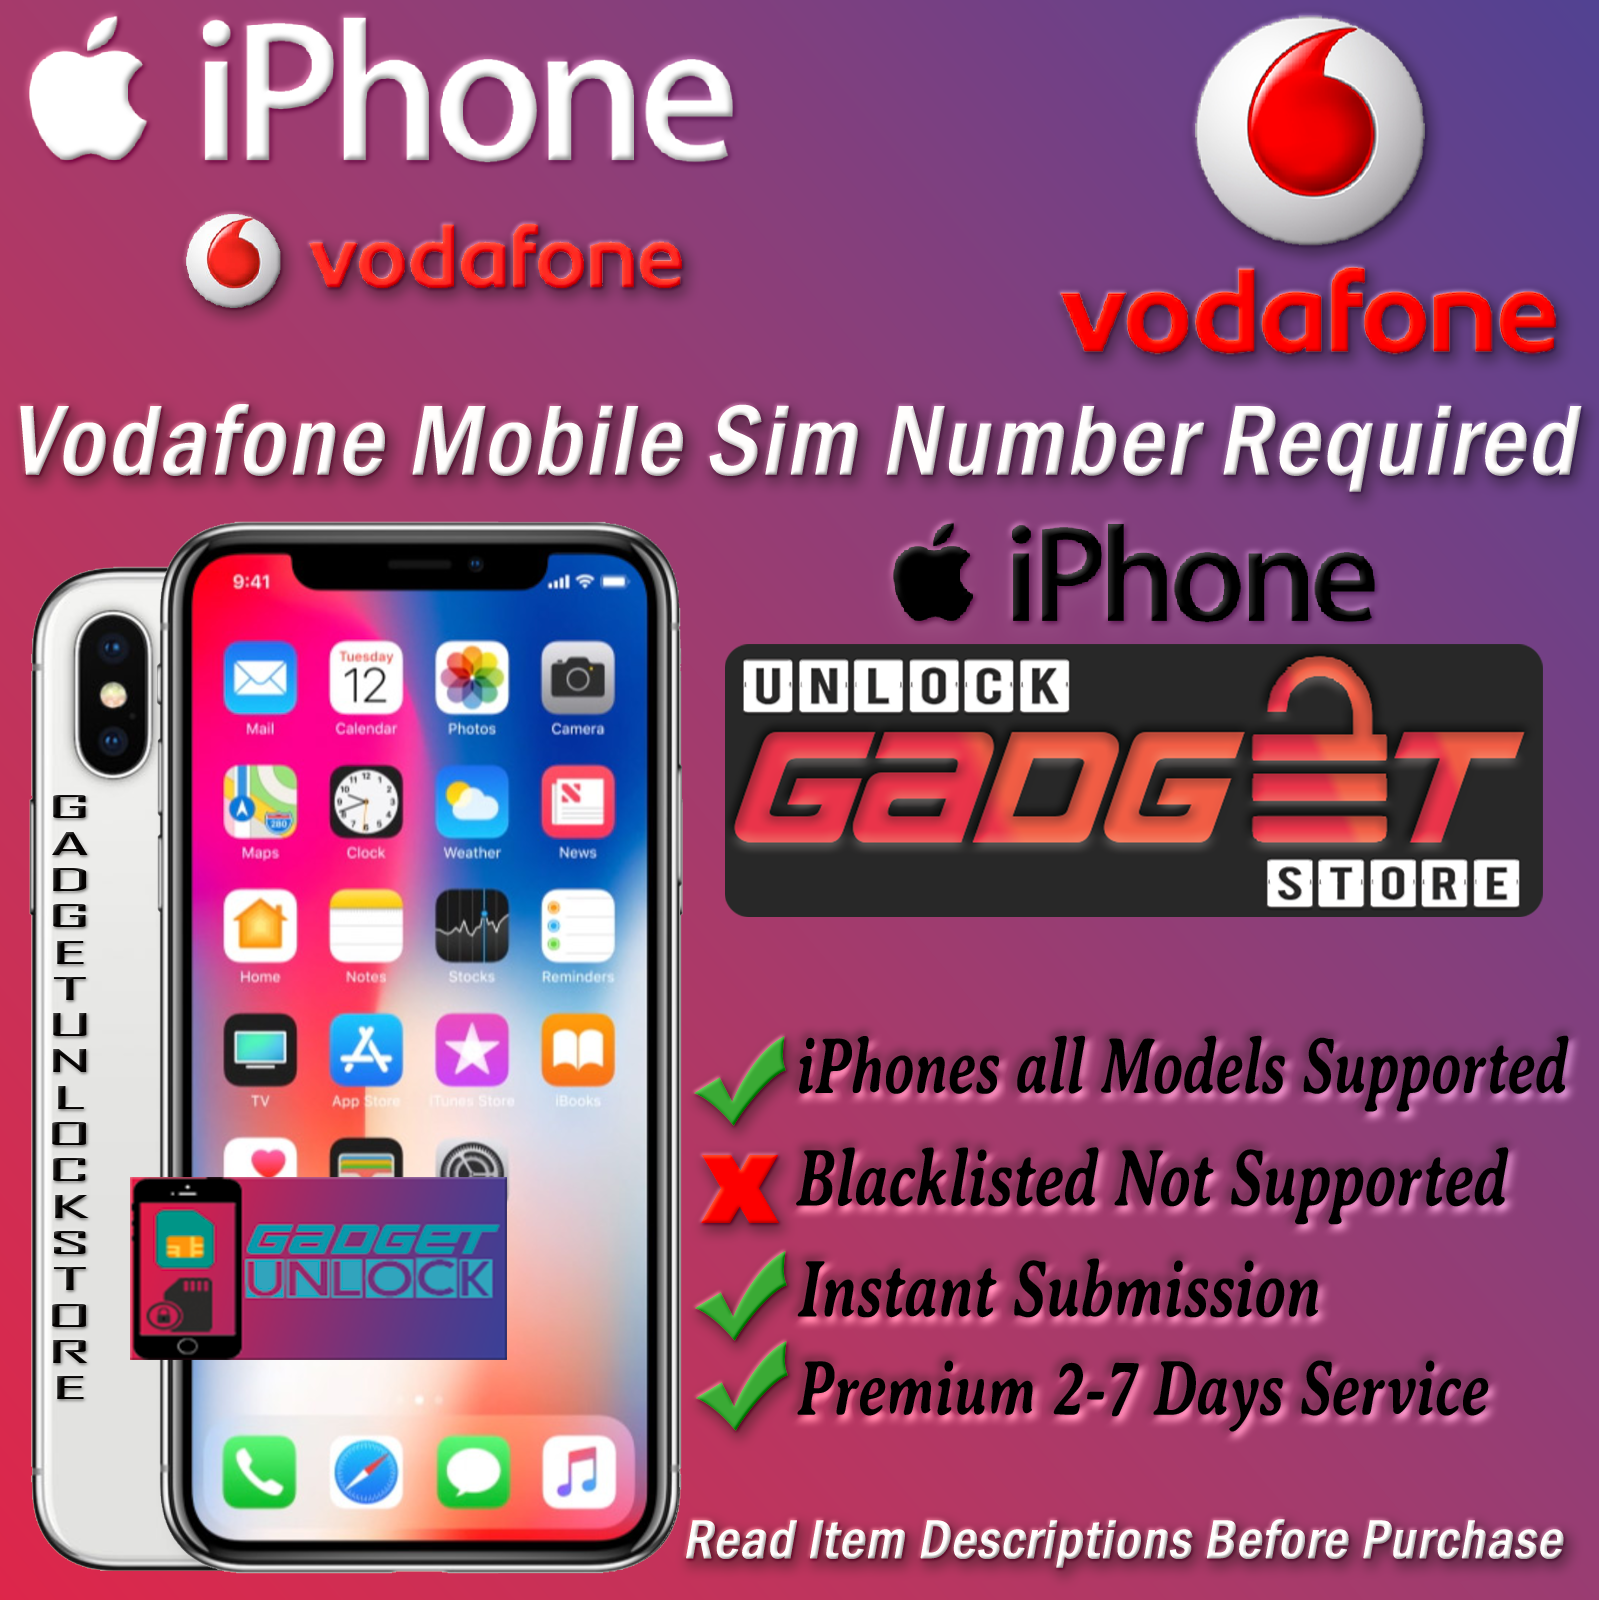 Unlock Service For iPhone 4 5 5S 5C SE 6 6S 7 8 X XS XR 11 Max Pro Vodafone UK 3